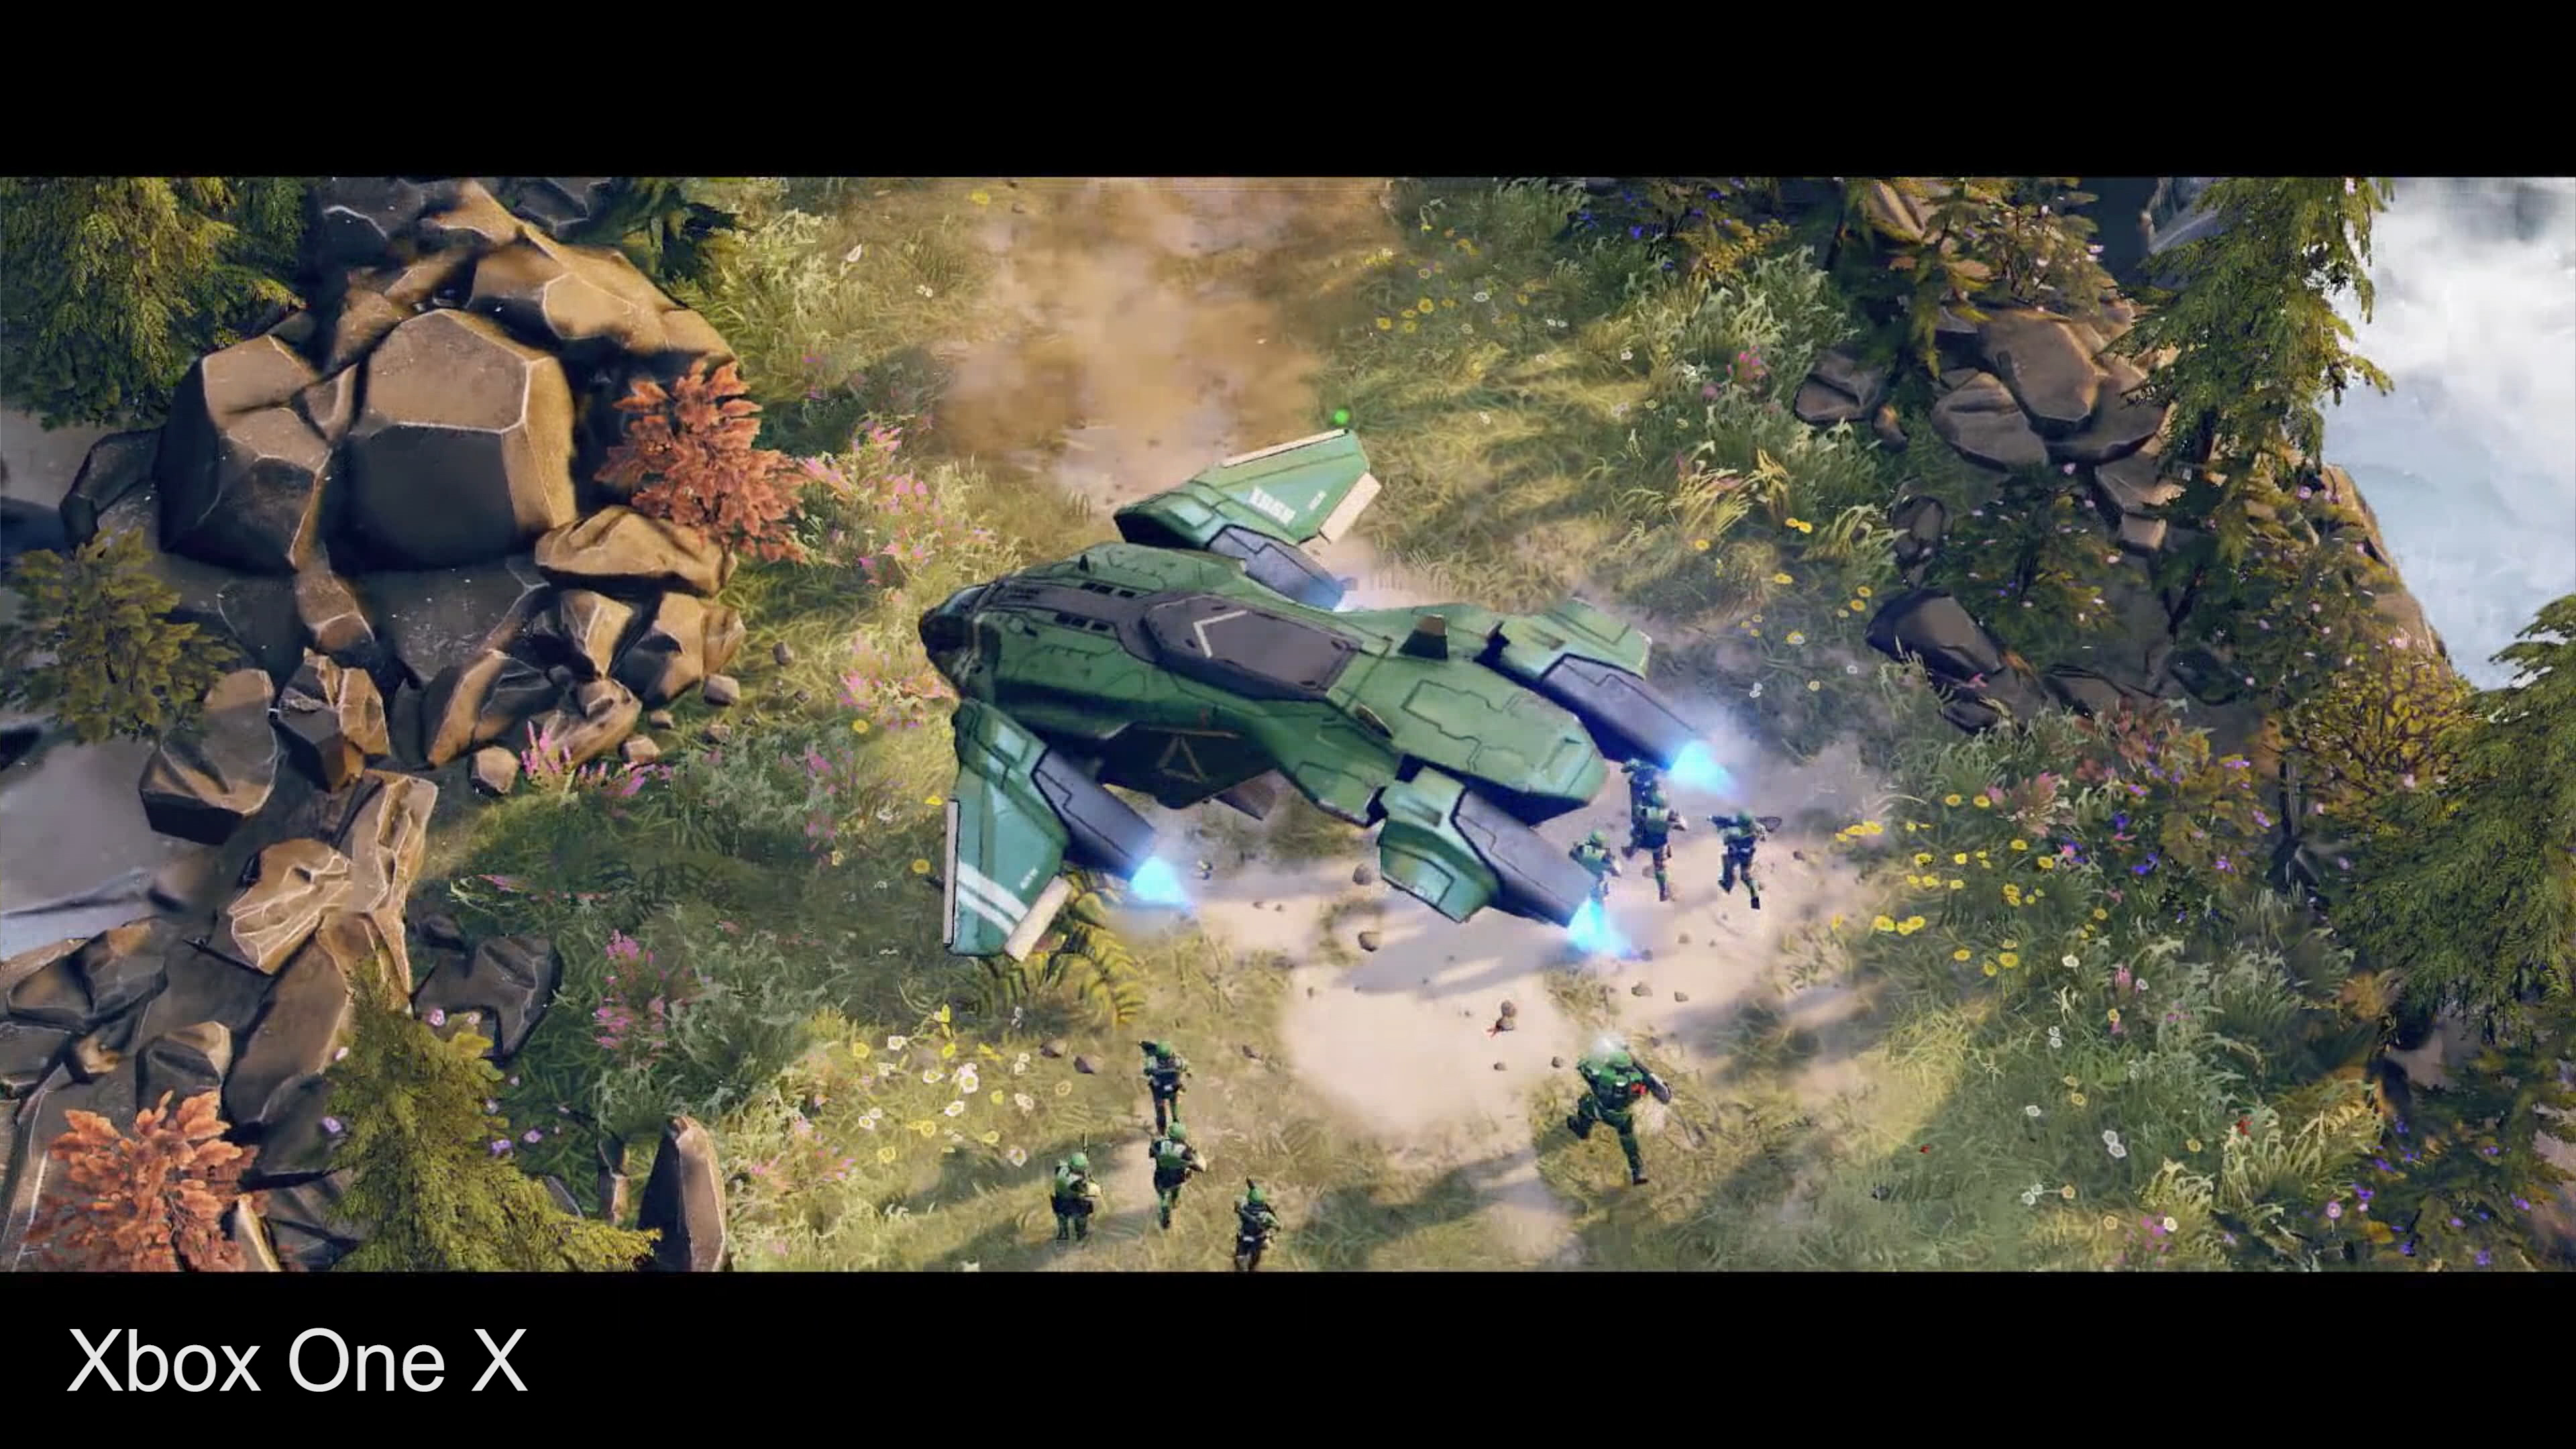 halo wars 2 how xbox one x compares to base hardware and pc